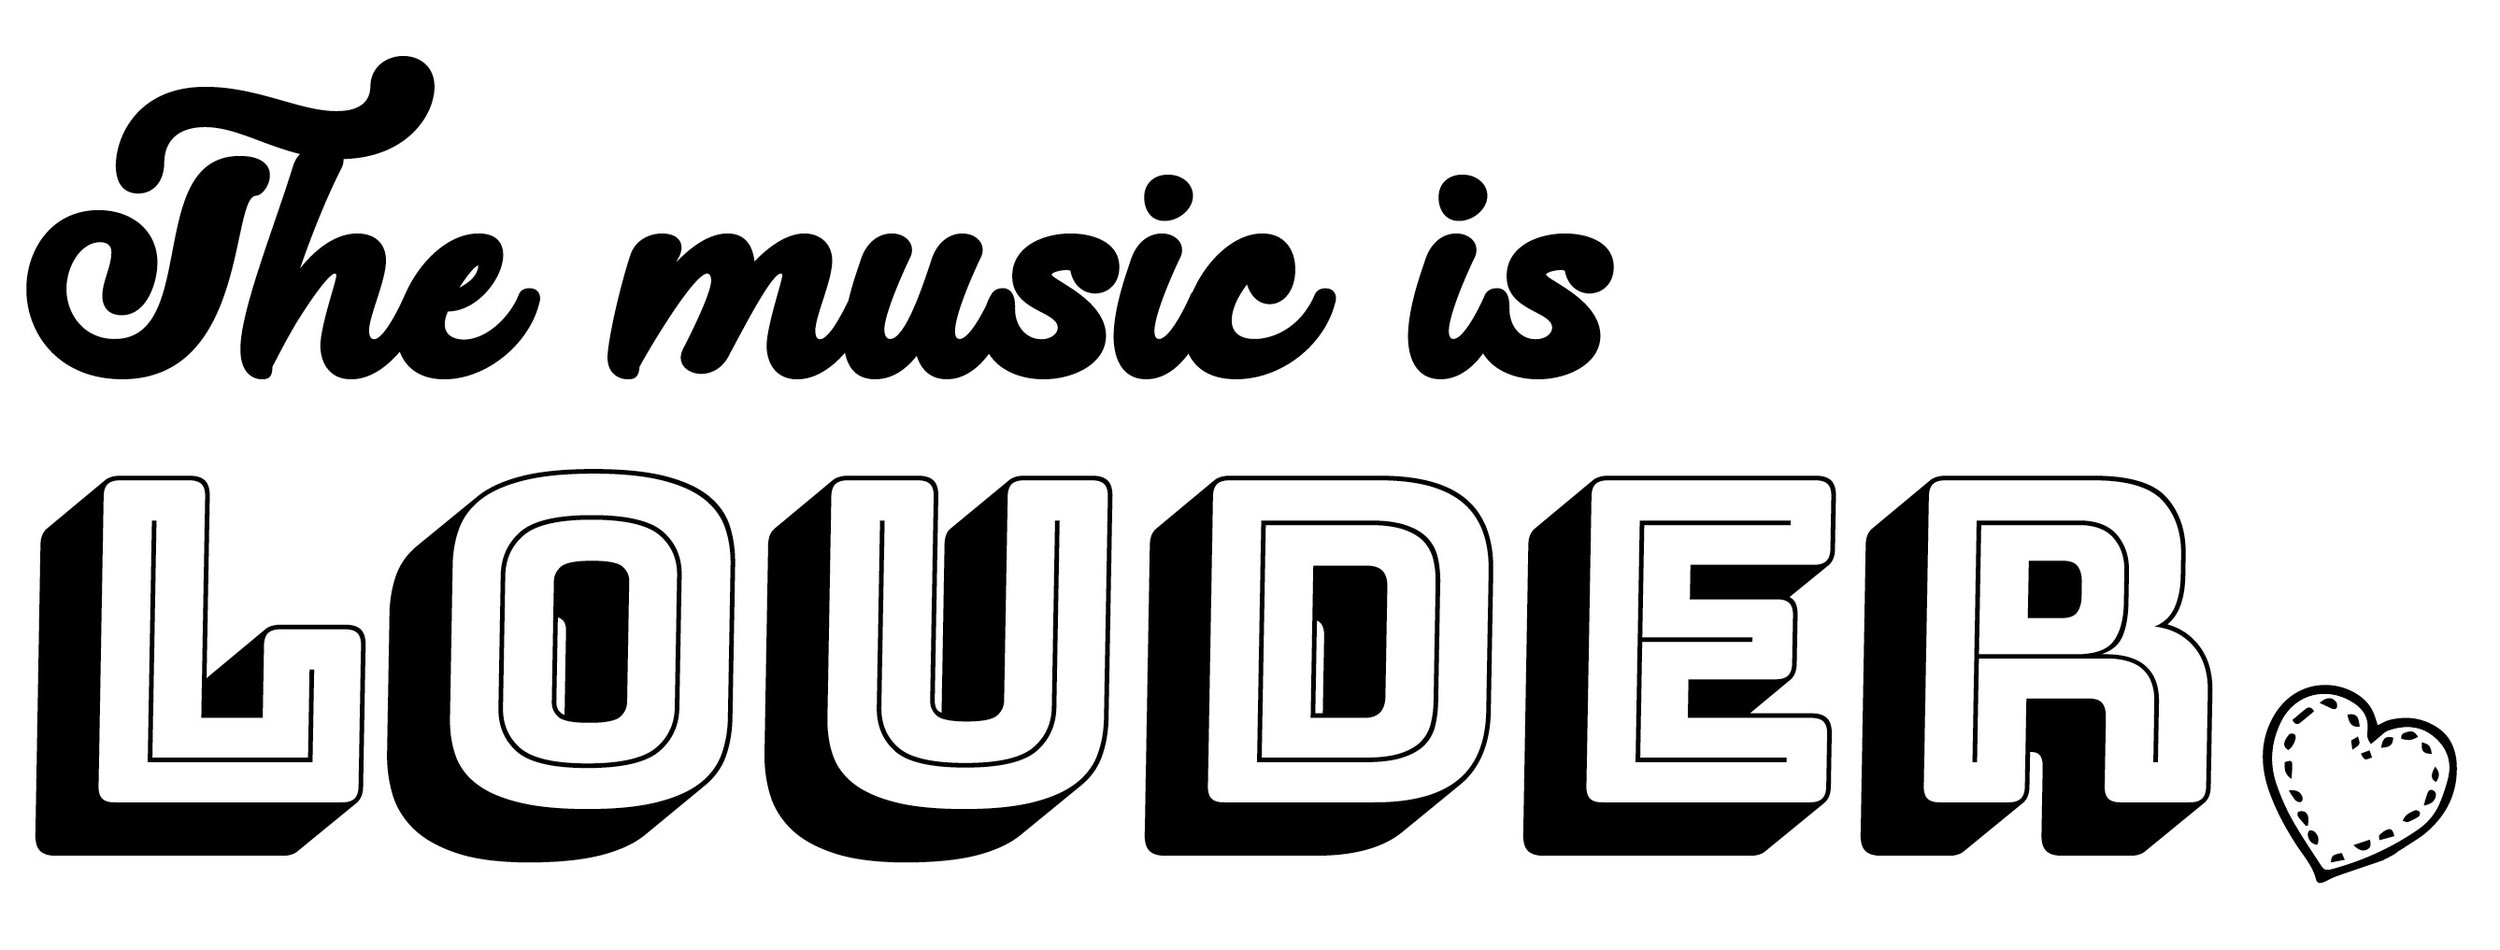 The Music is louder Logo.jpg